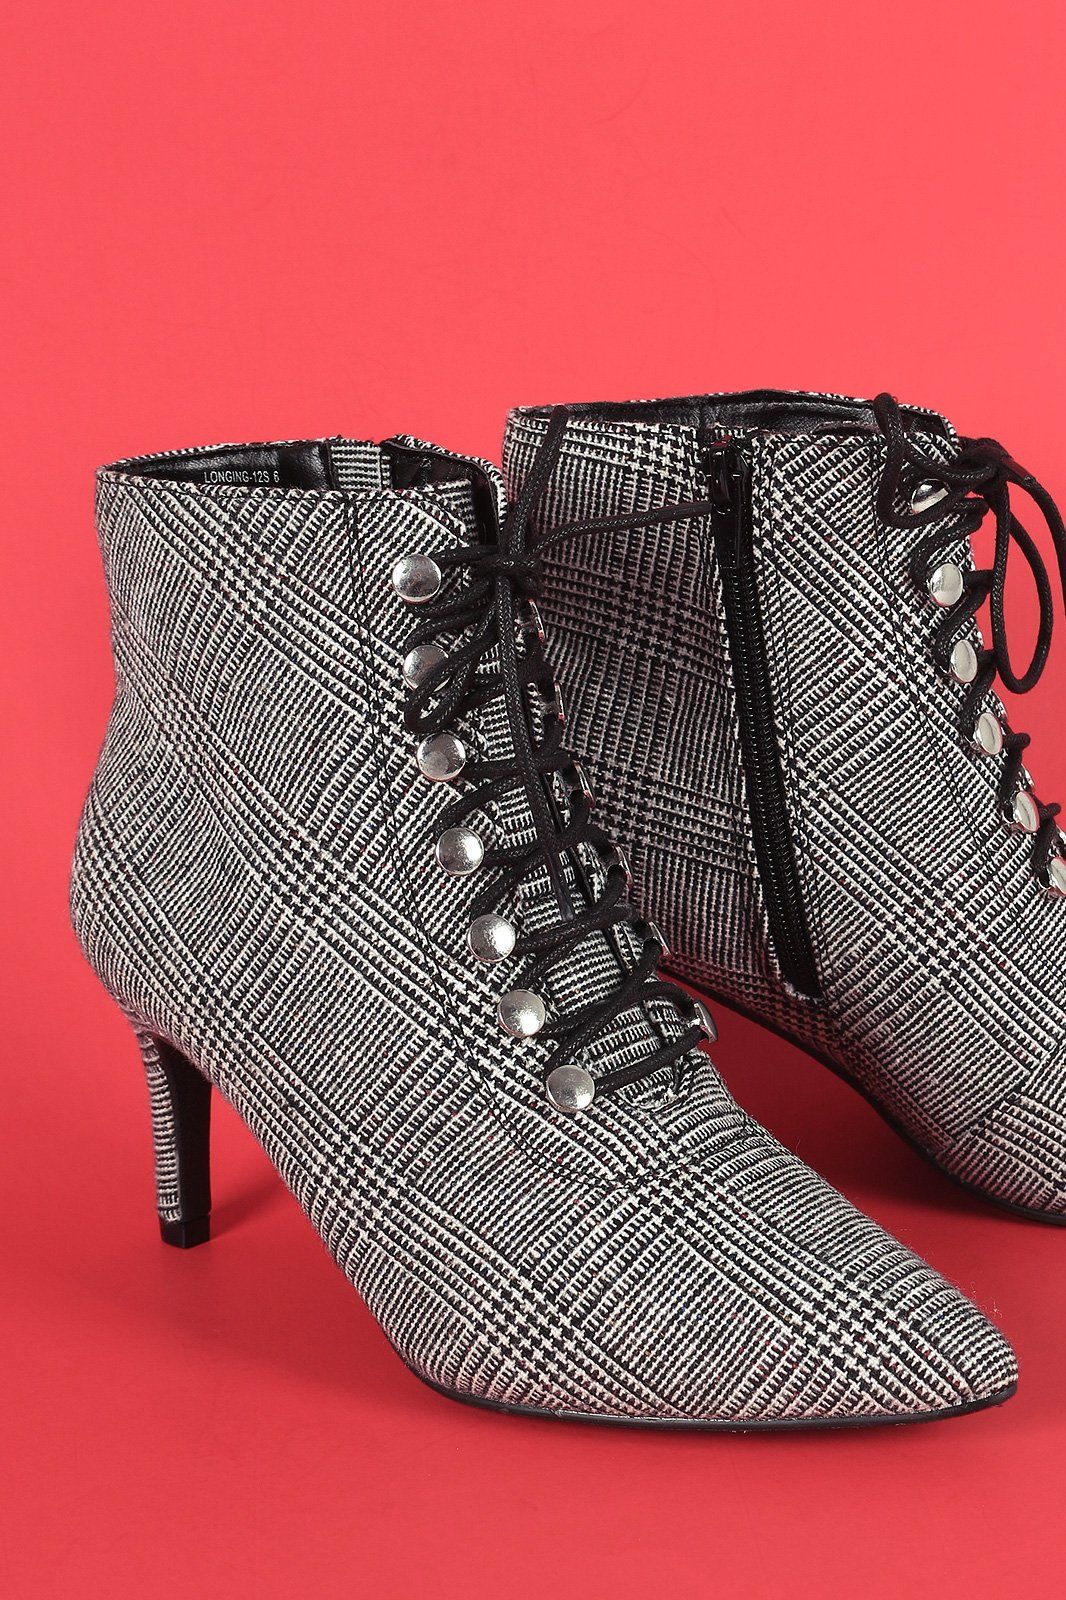 237845fada93 Womens Fashion Ankle Boots - Bamboo Houndstooth Pointy Toe Lace-Up Stiletto  Booties